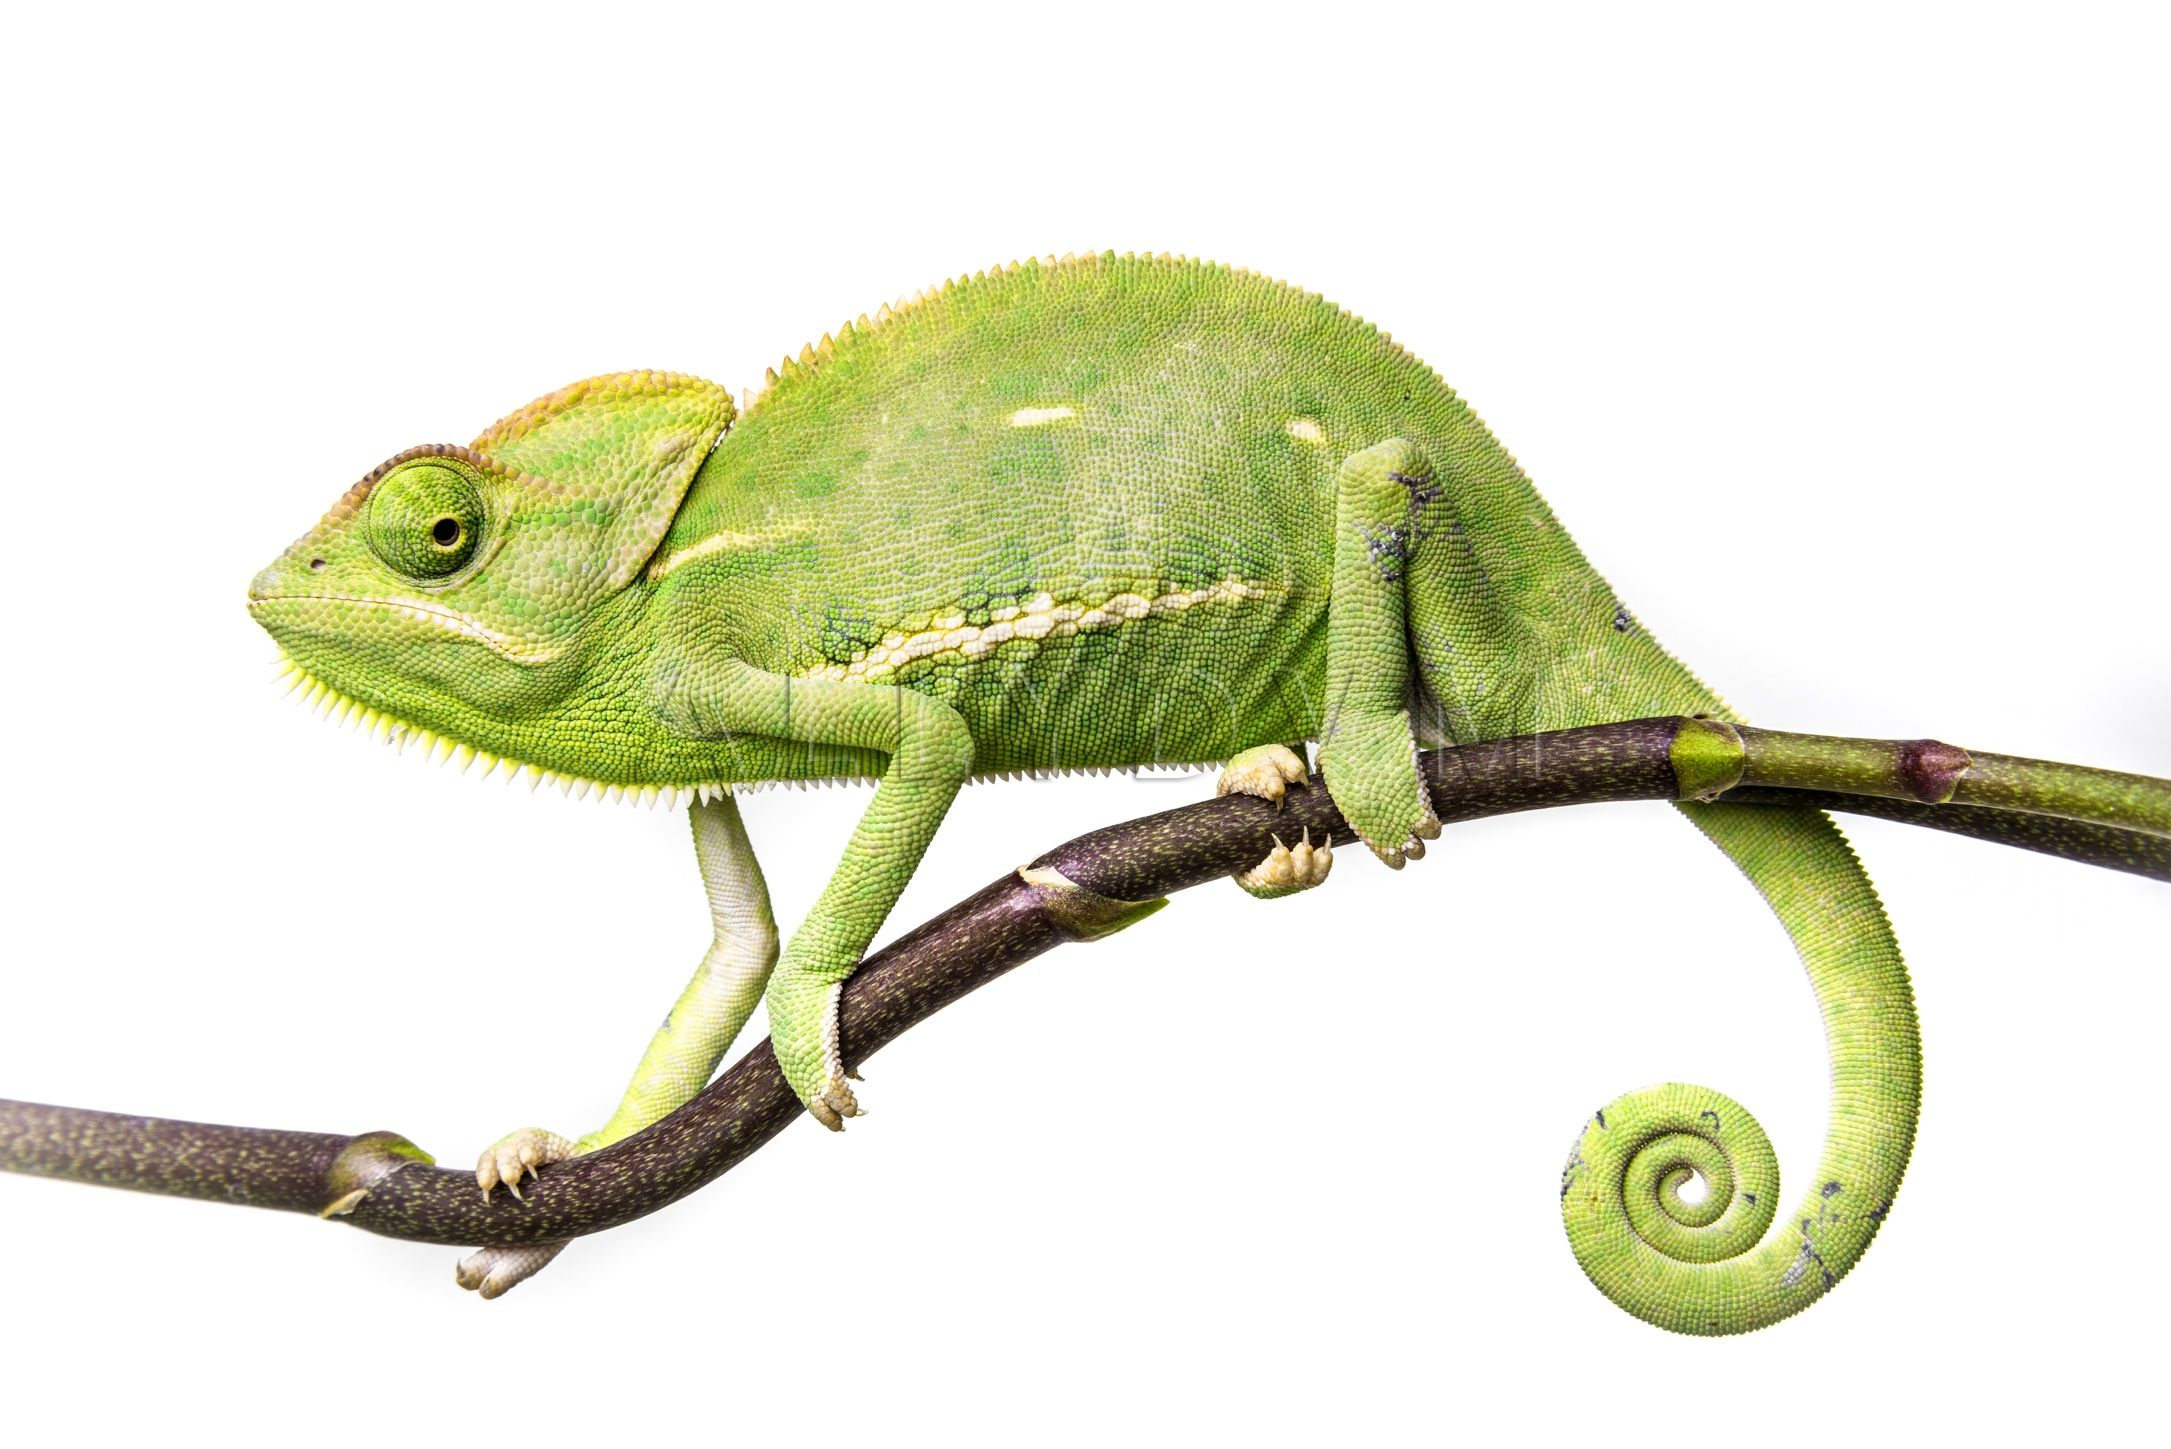 Pin on Small & Exotic Animals